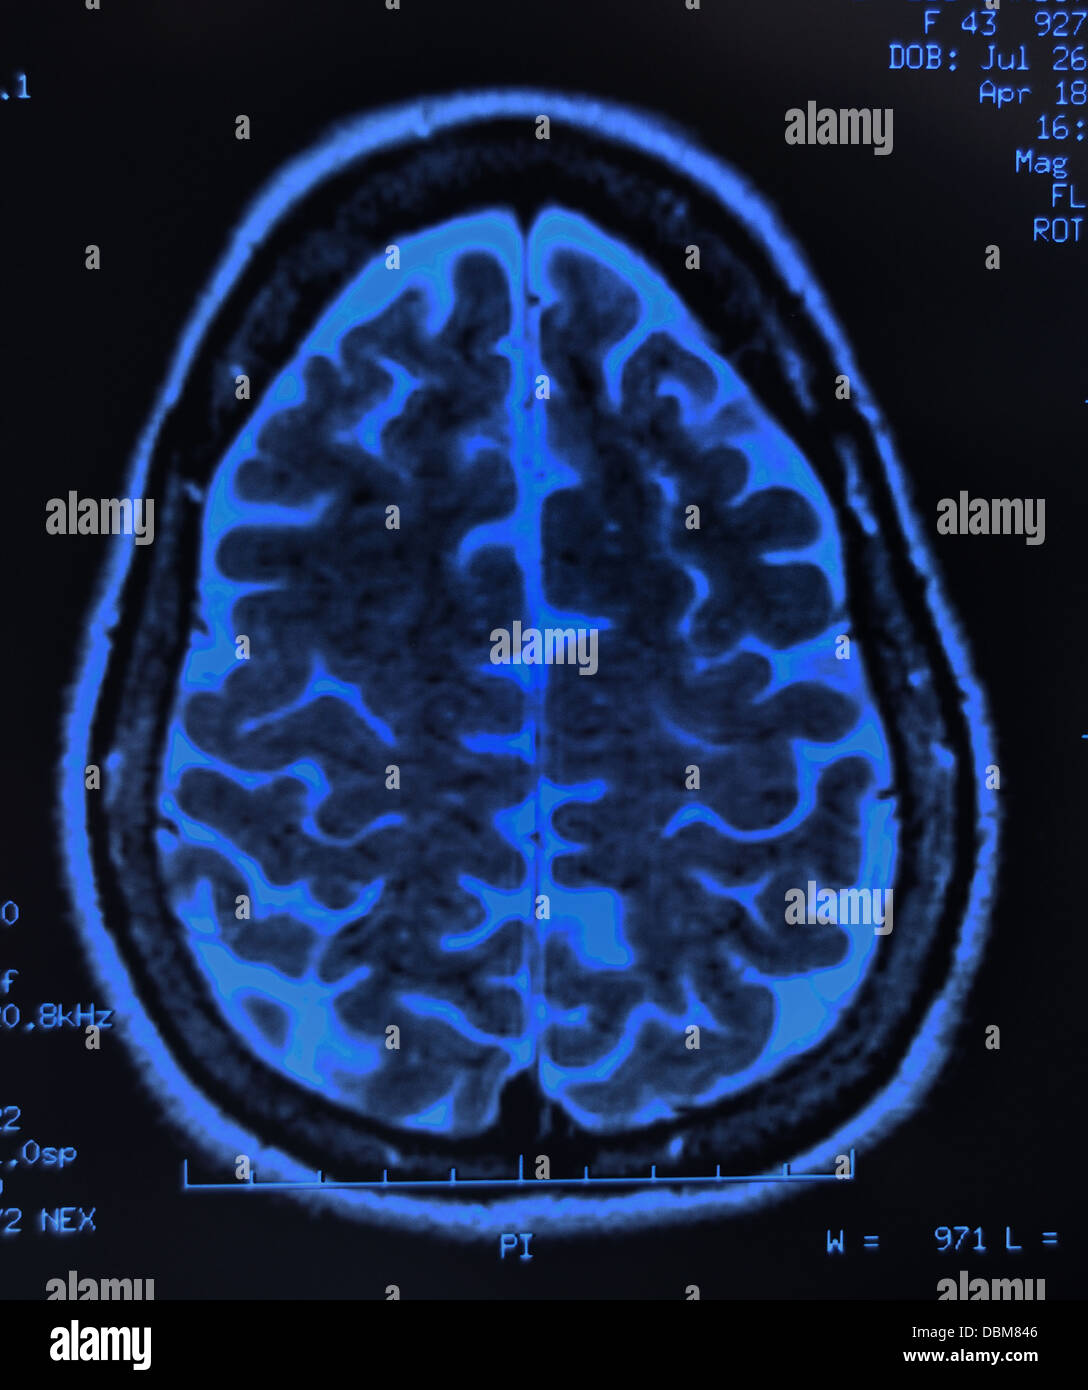 Cerveau humain / scan irm, X-ray Photo Stock